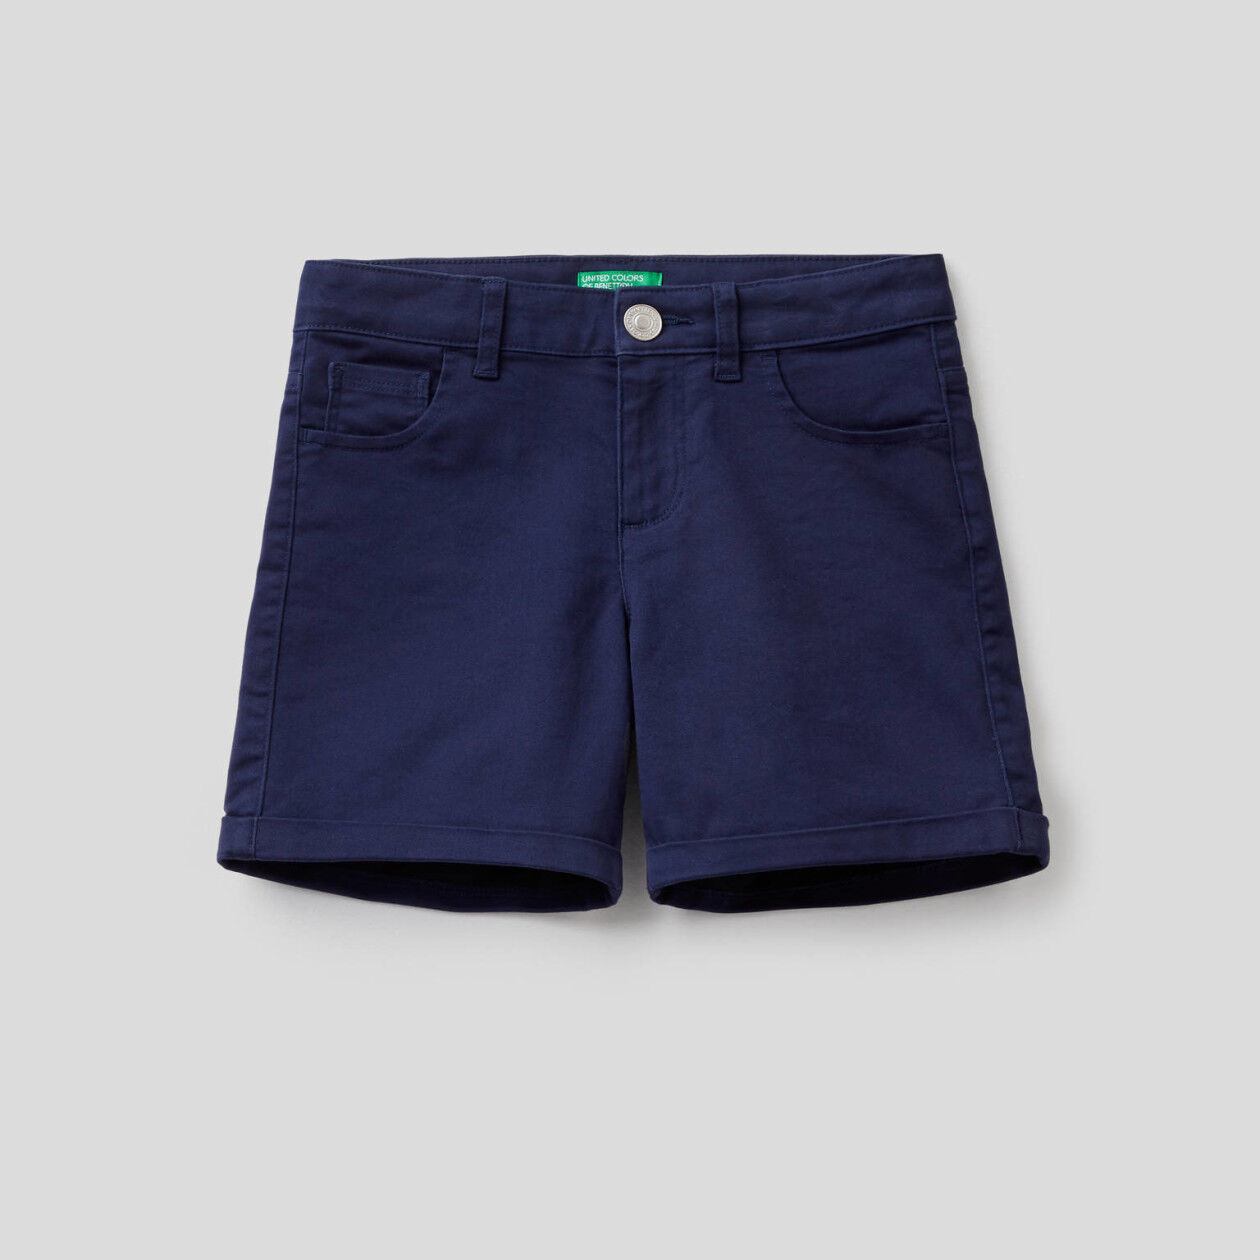 Five pocket solid color pockets